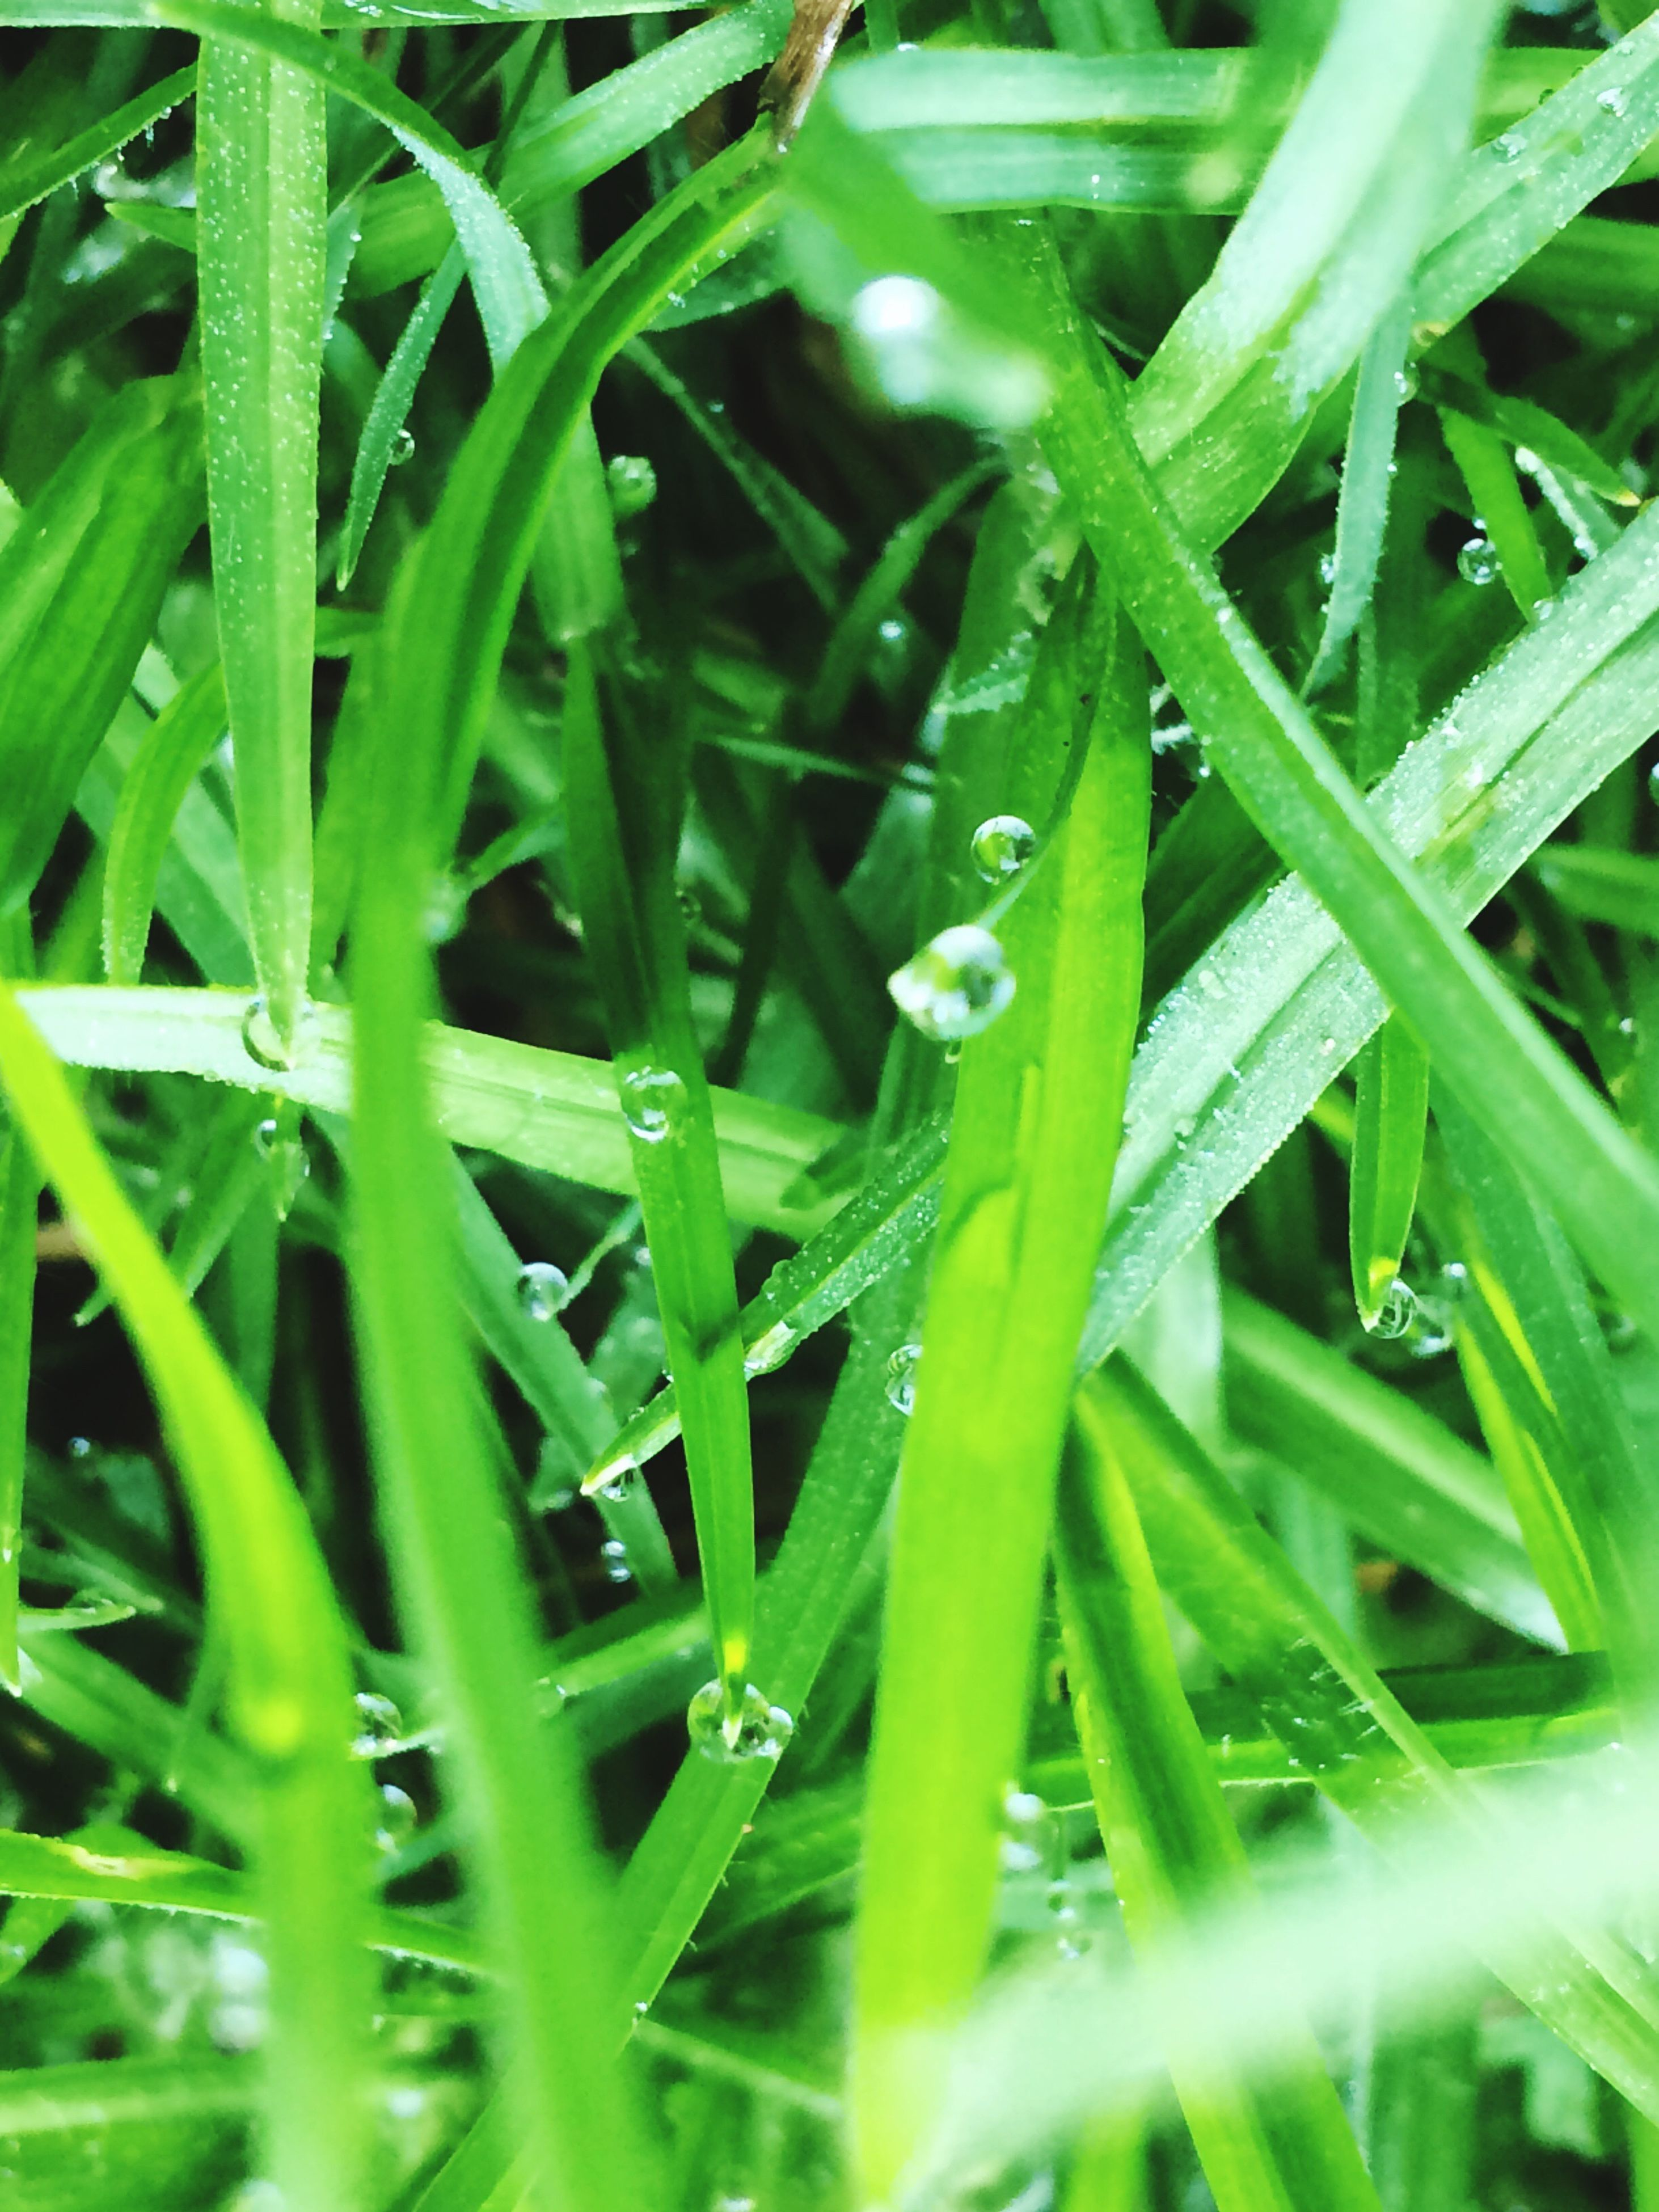 green color, growth, nature, drop, wet, plant, dew, grass, leaf, close-up, no people, blade of grass, outdoors, beauty in nature, full frame, water, day, raindrop, fragility, freshness